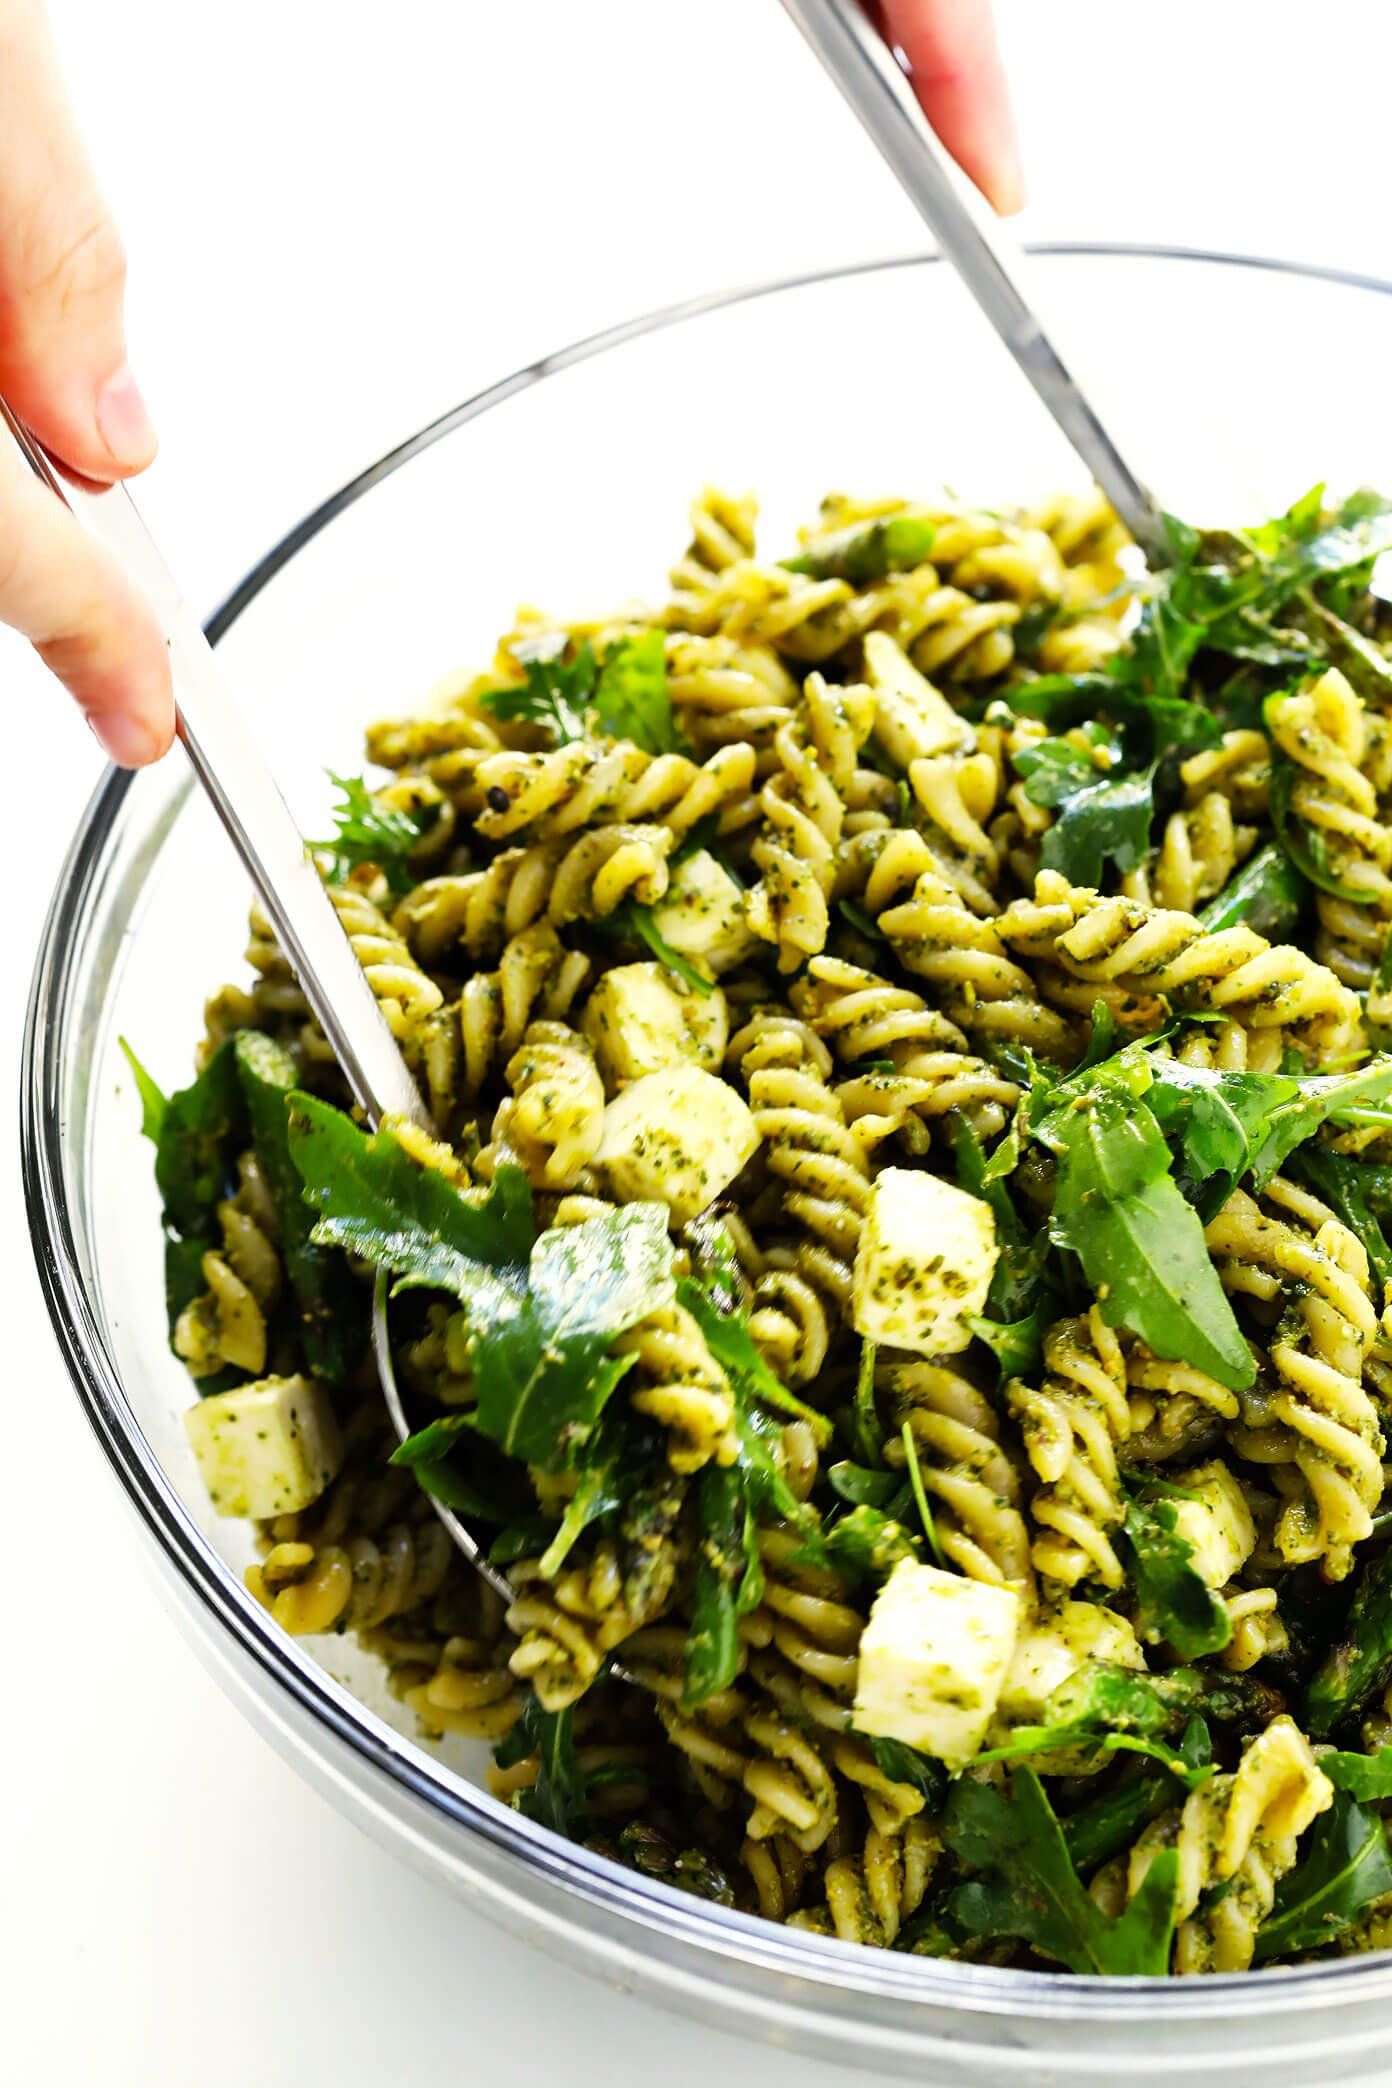 How To Make Pistachio Pesto Pasta Salad